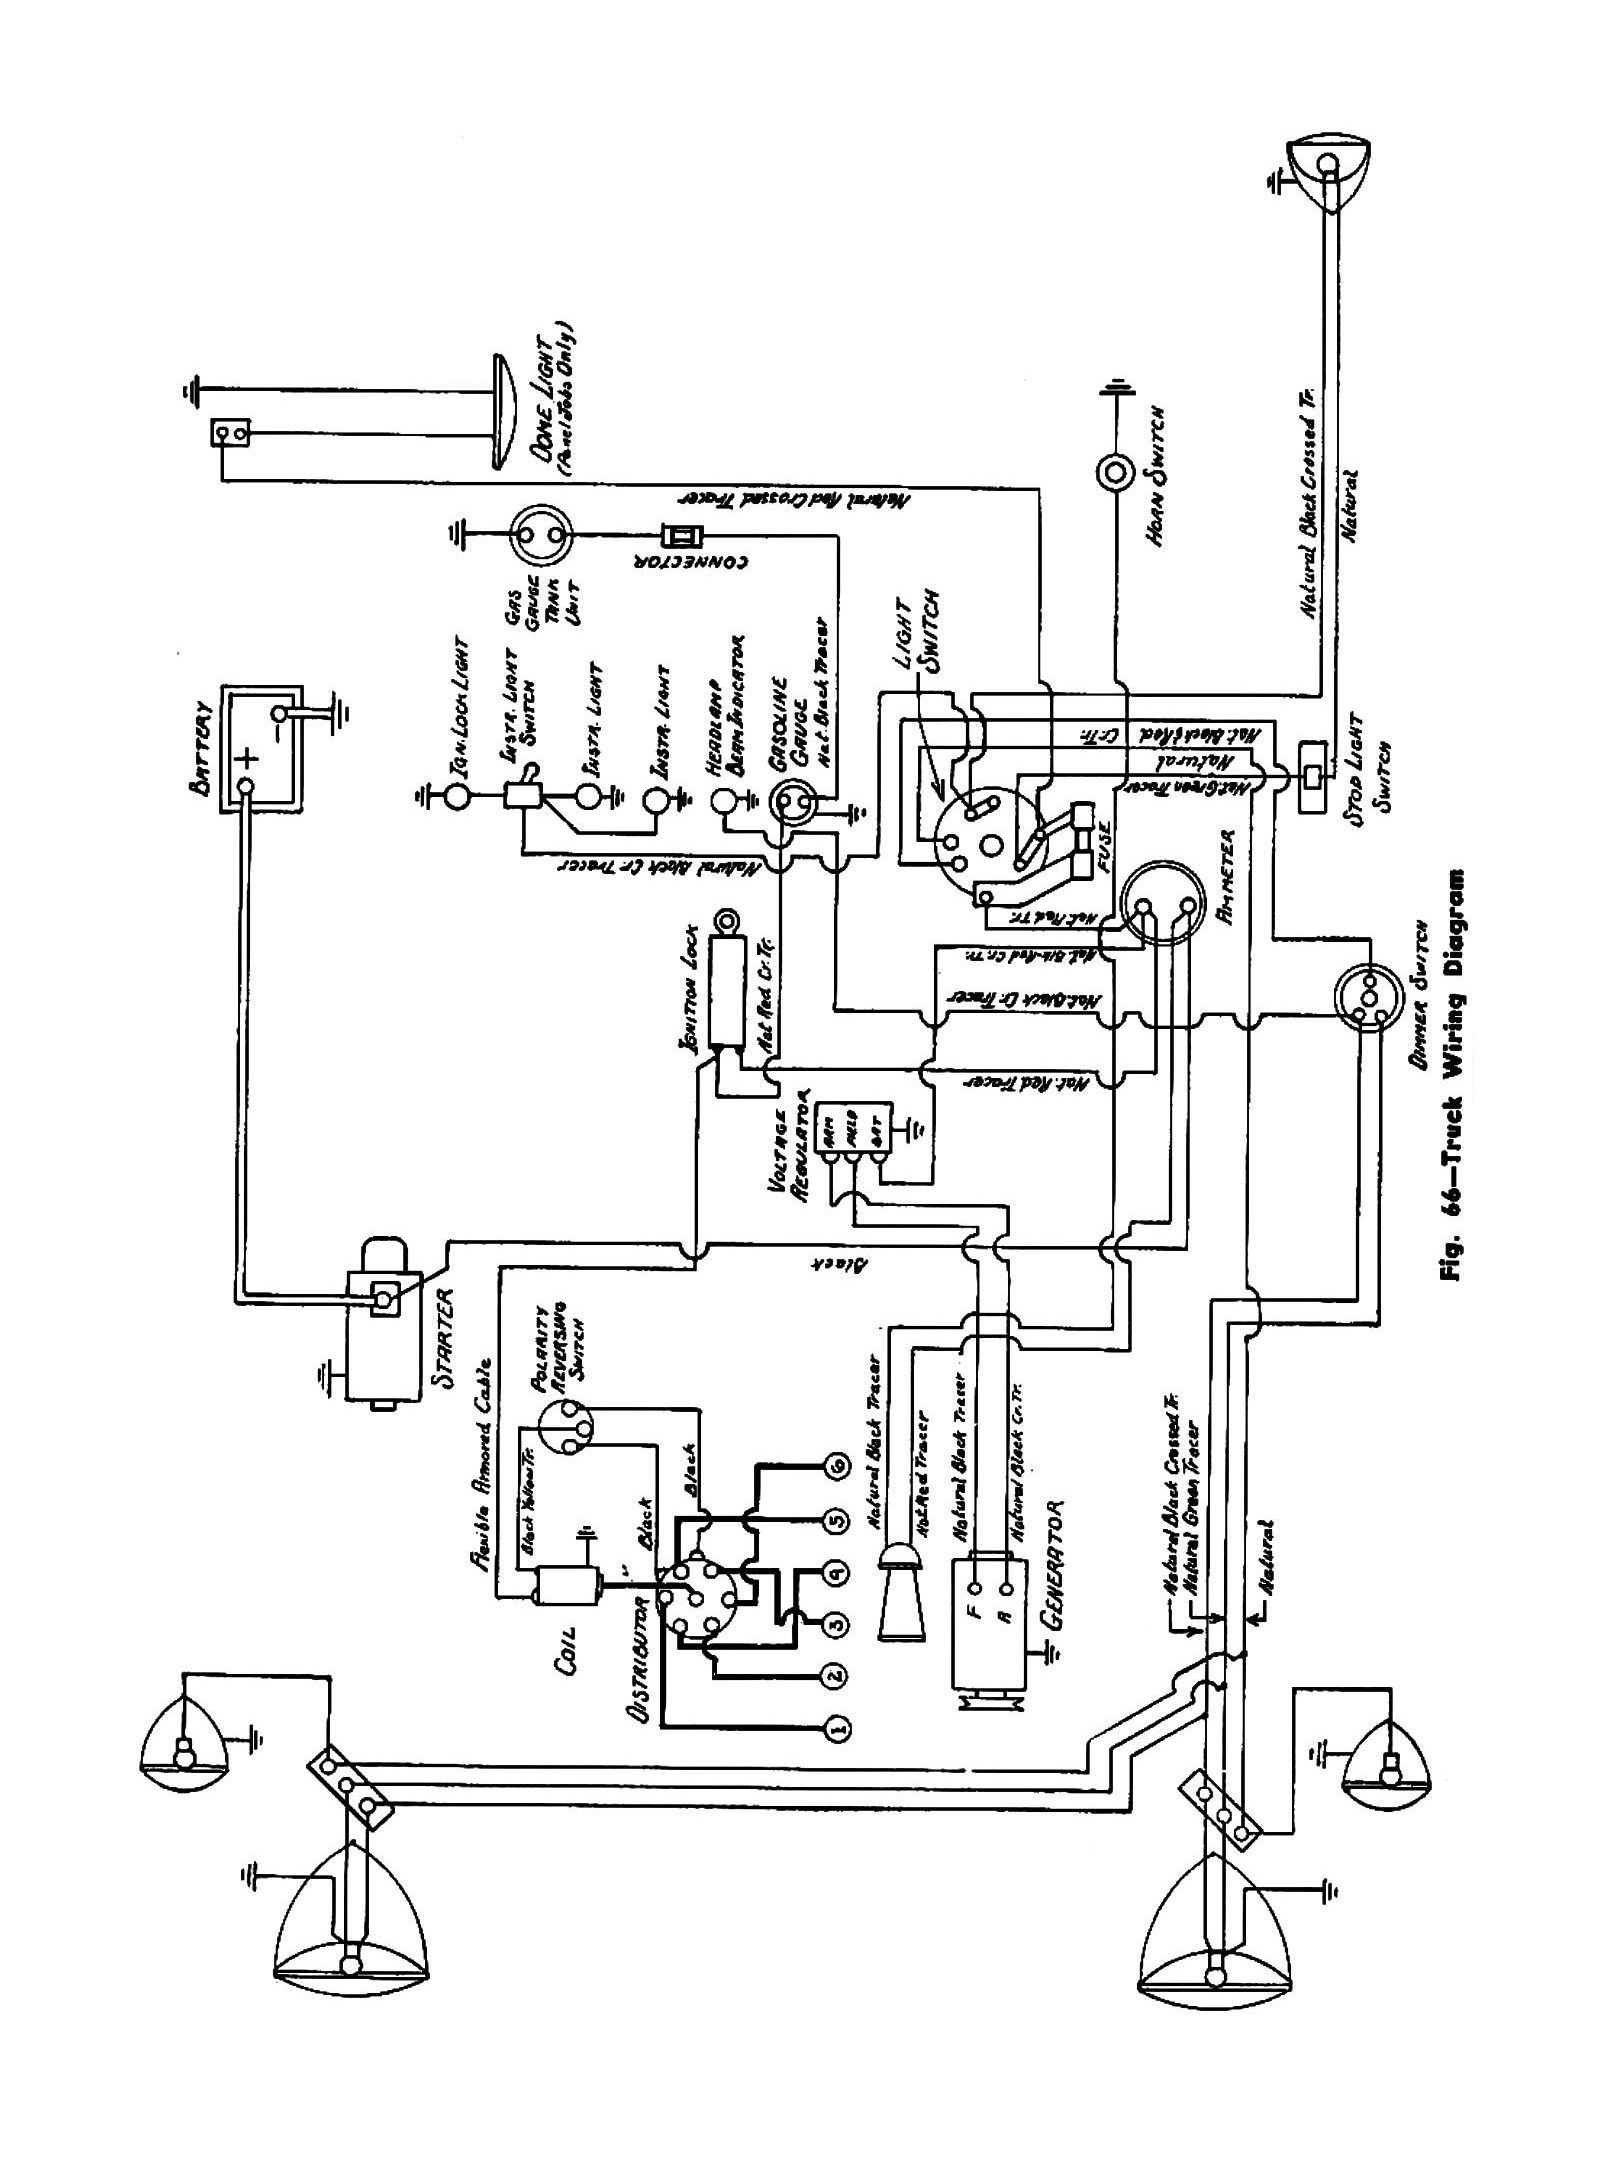 hight resolution of wrg 5531 1979 gmc fuse panel diagram1979 gmc fuse panel diagram